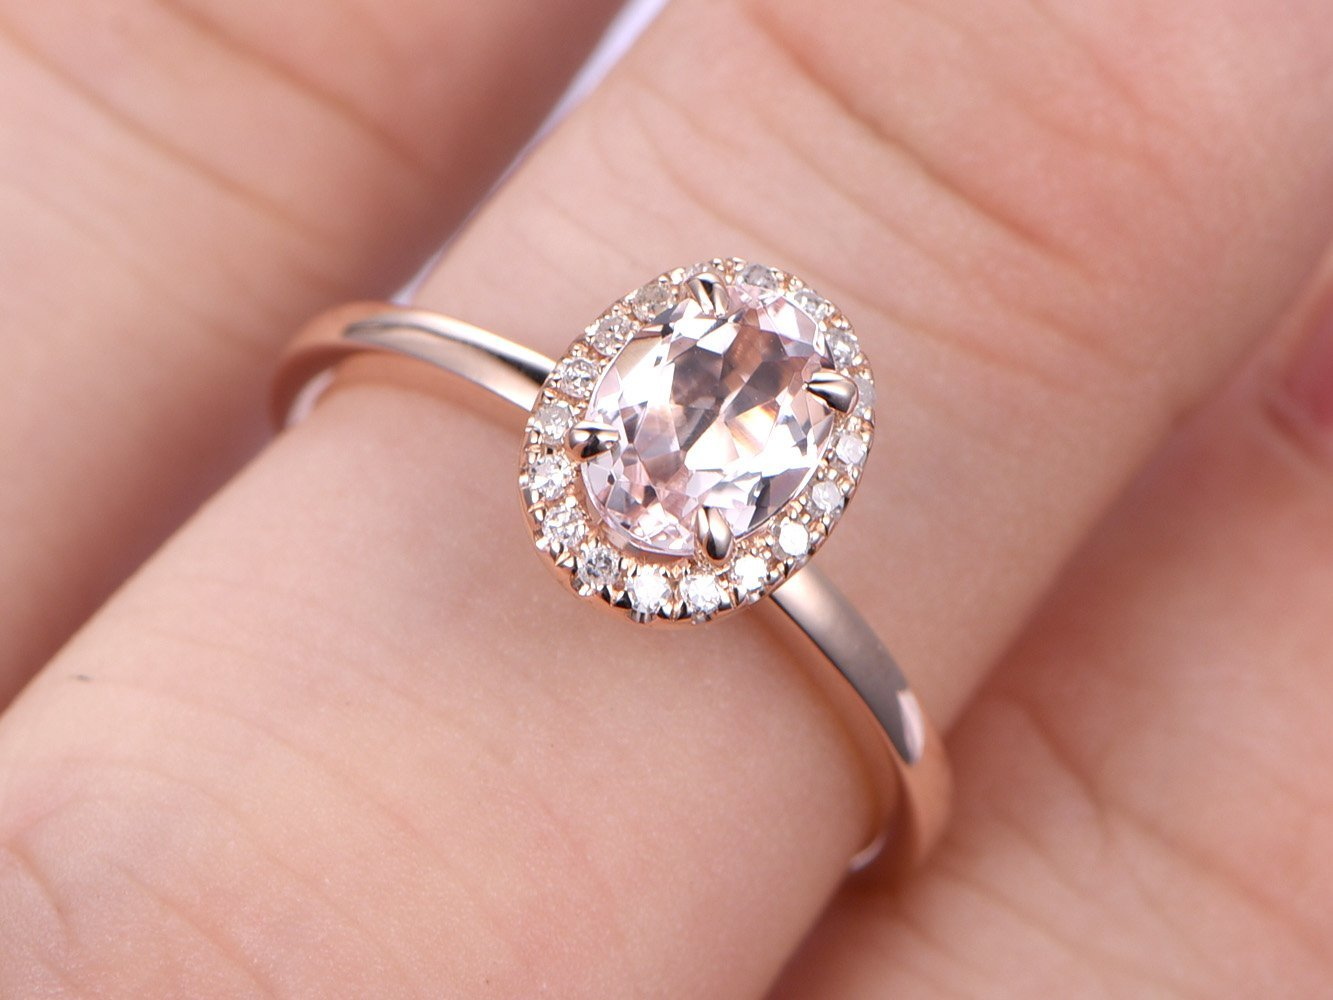 Amazon.com: Solid 14k Rose Gold 5x7mm Oval Cut Natural Pink ...